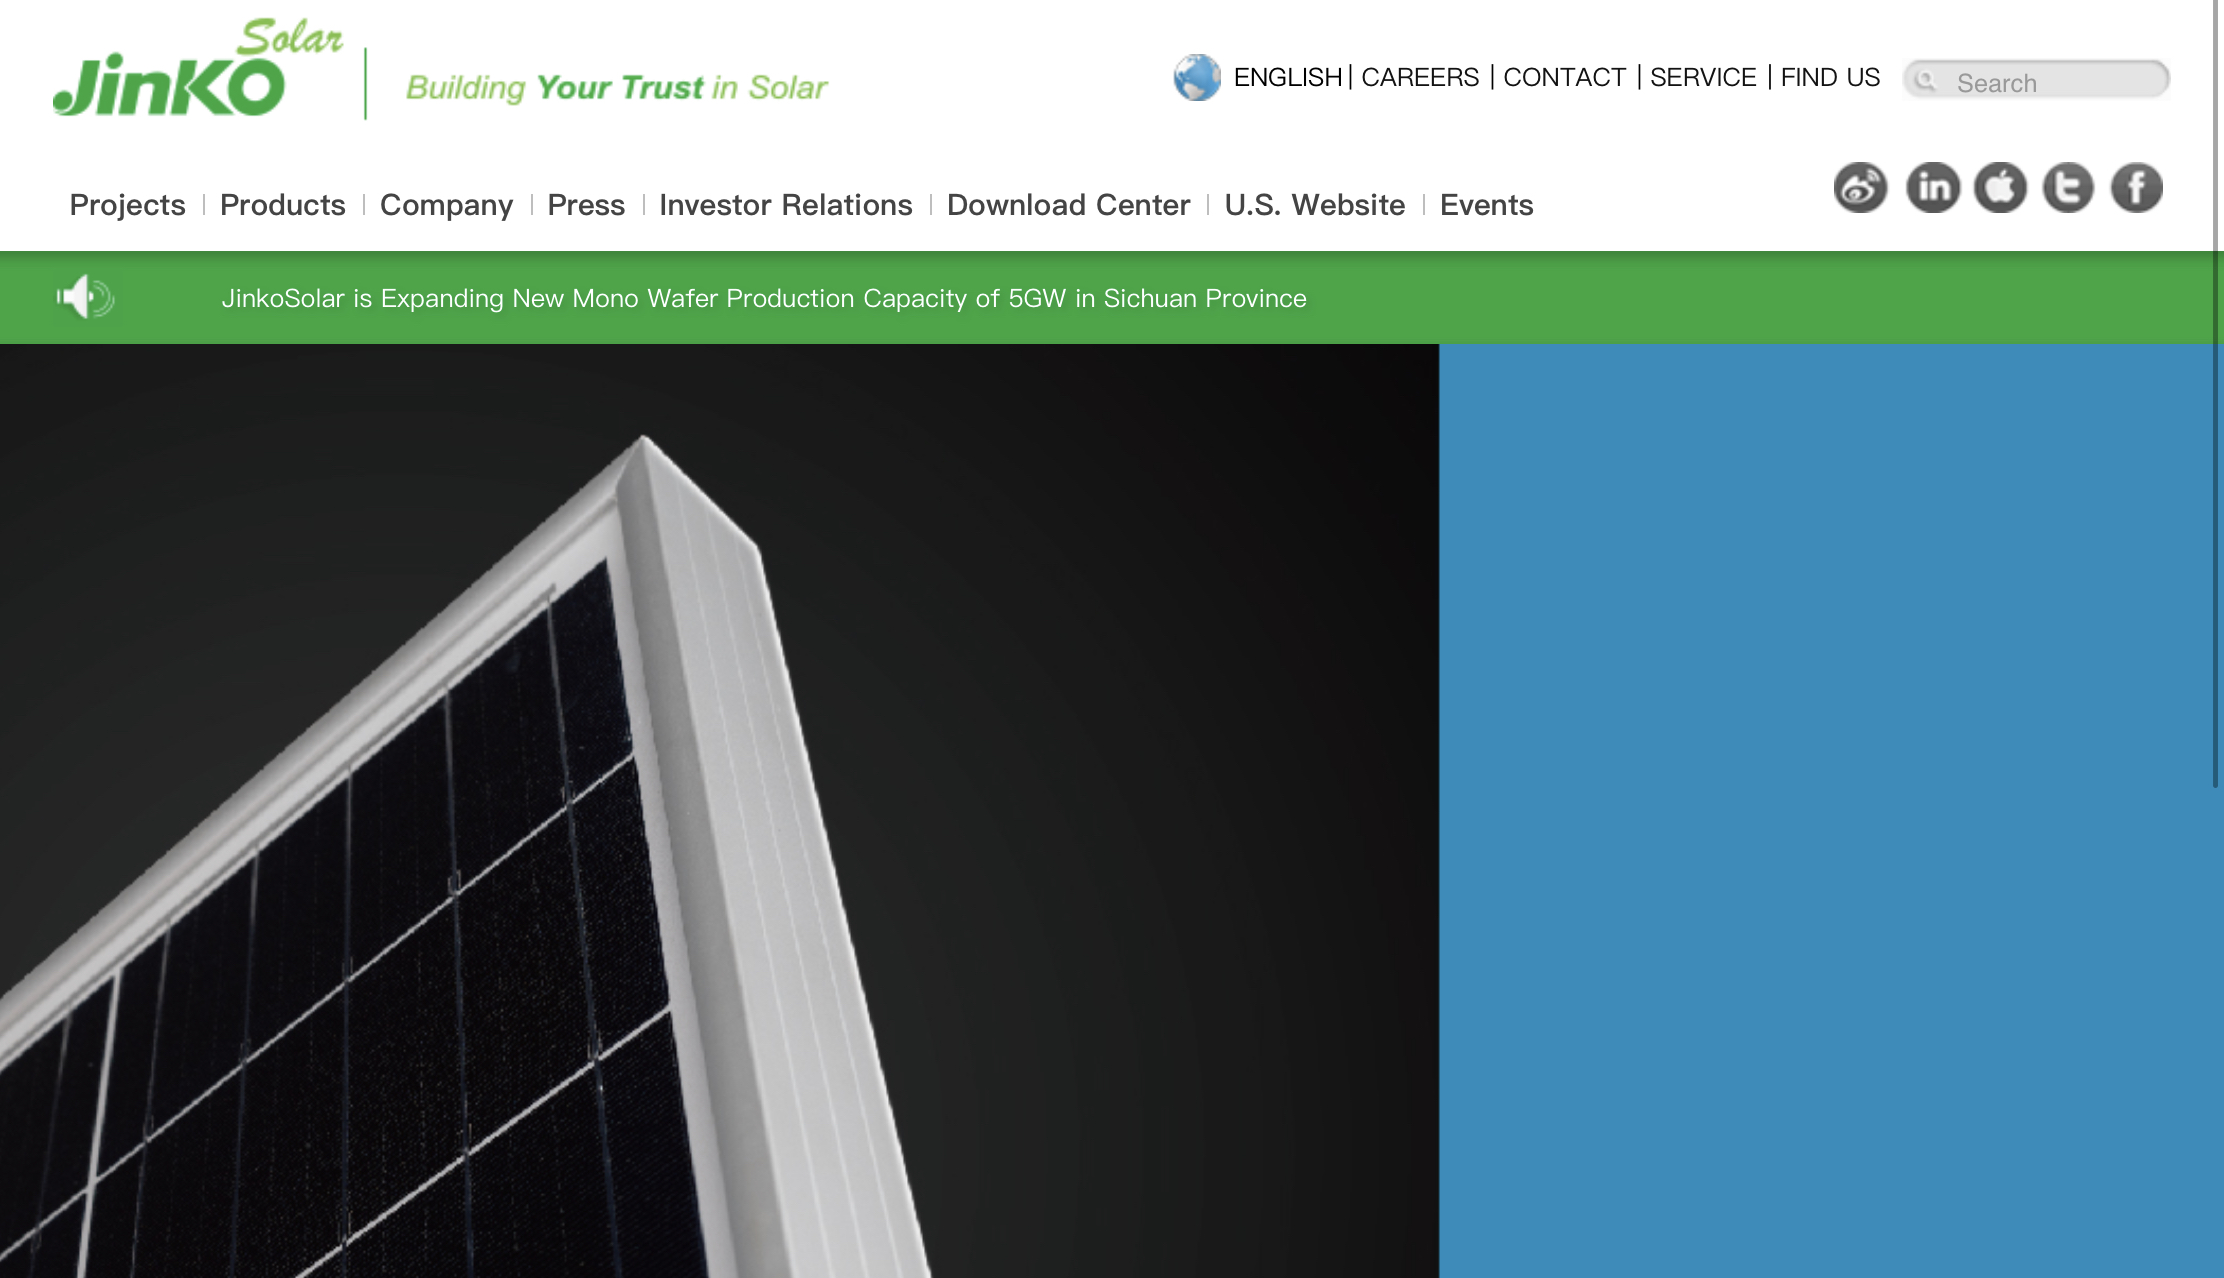 JinkoSolar Targets $64 Million in Follow-on Offering; $85 Million in Private Placement